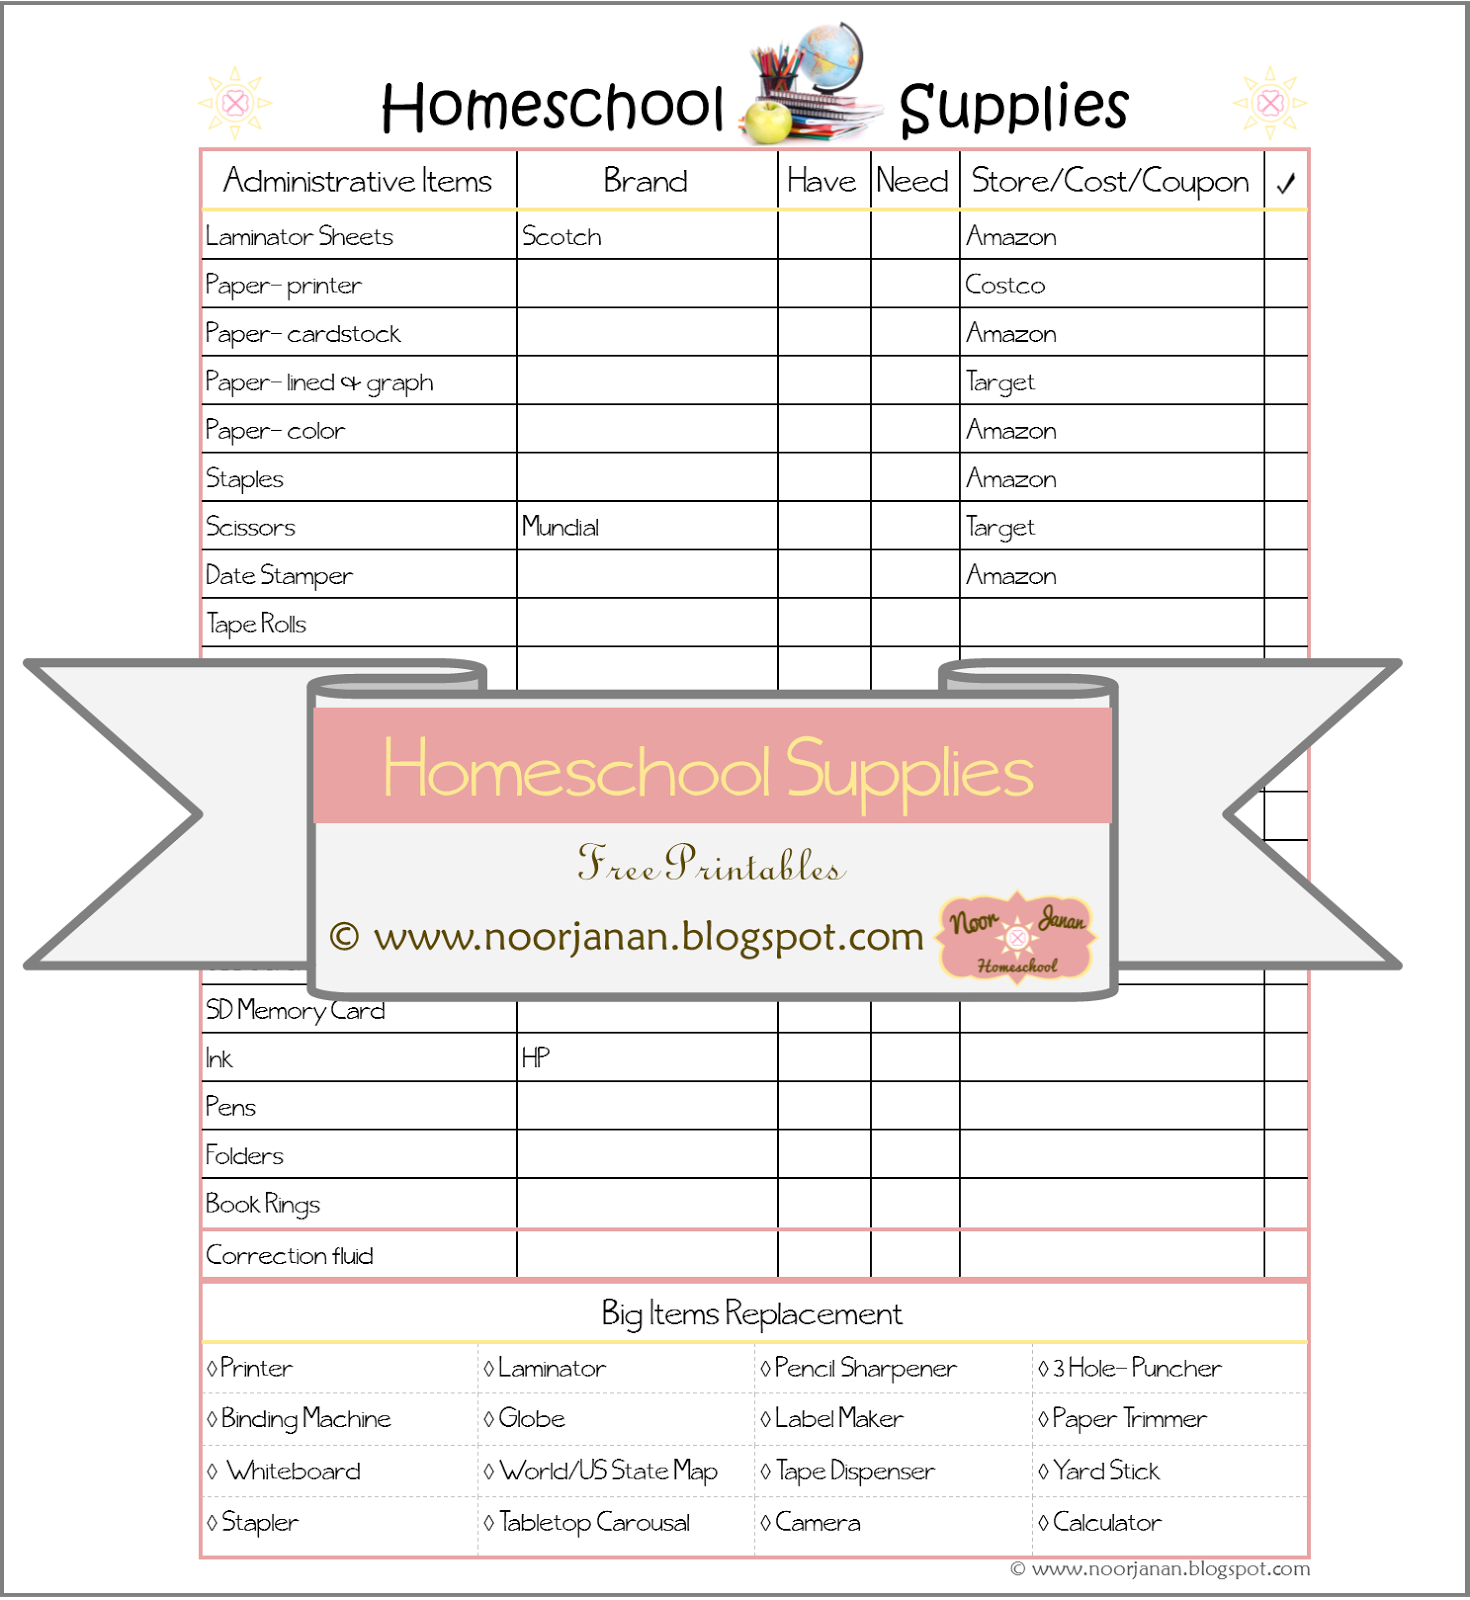 Noor Janan Homeschool Homeschool Supplies